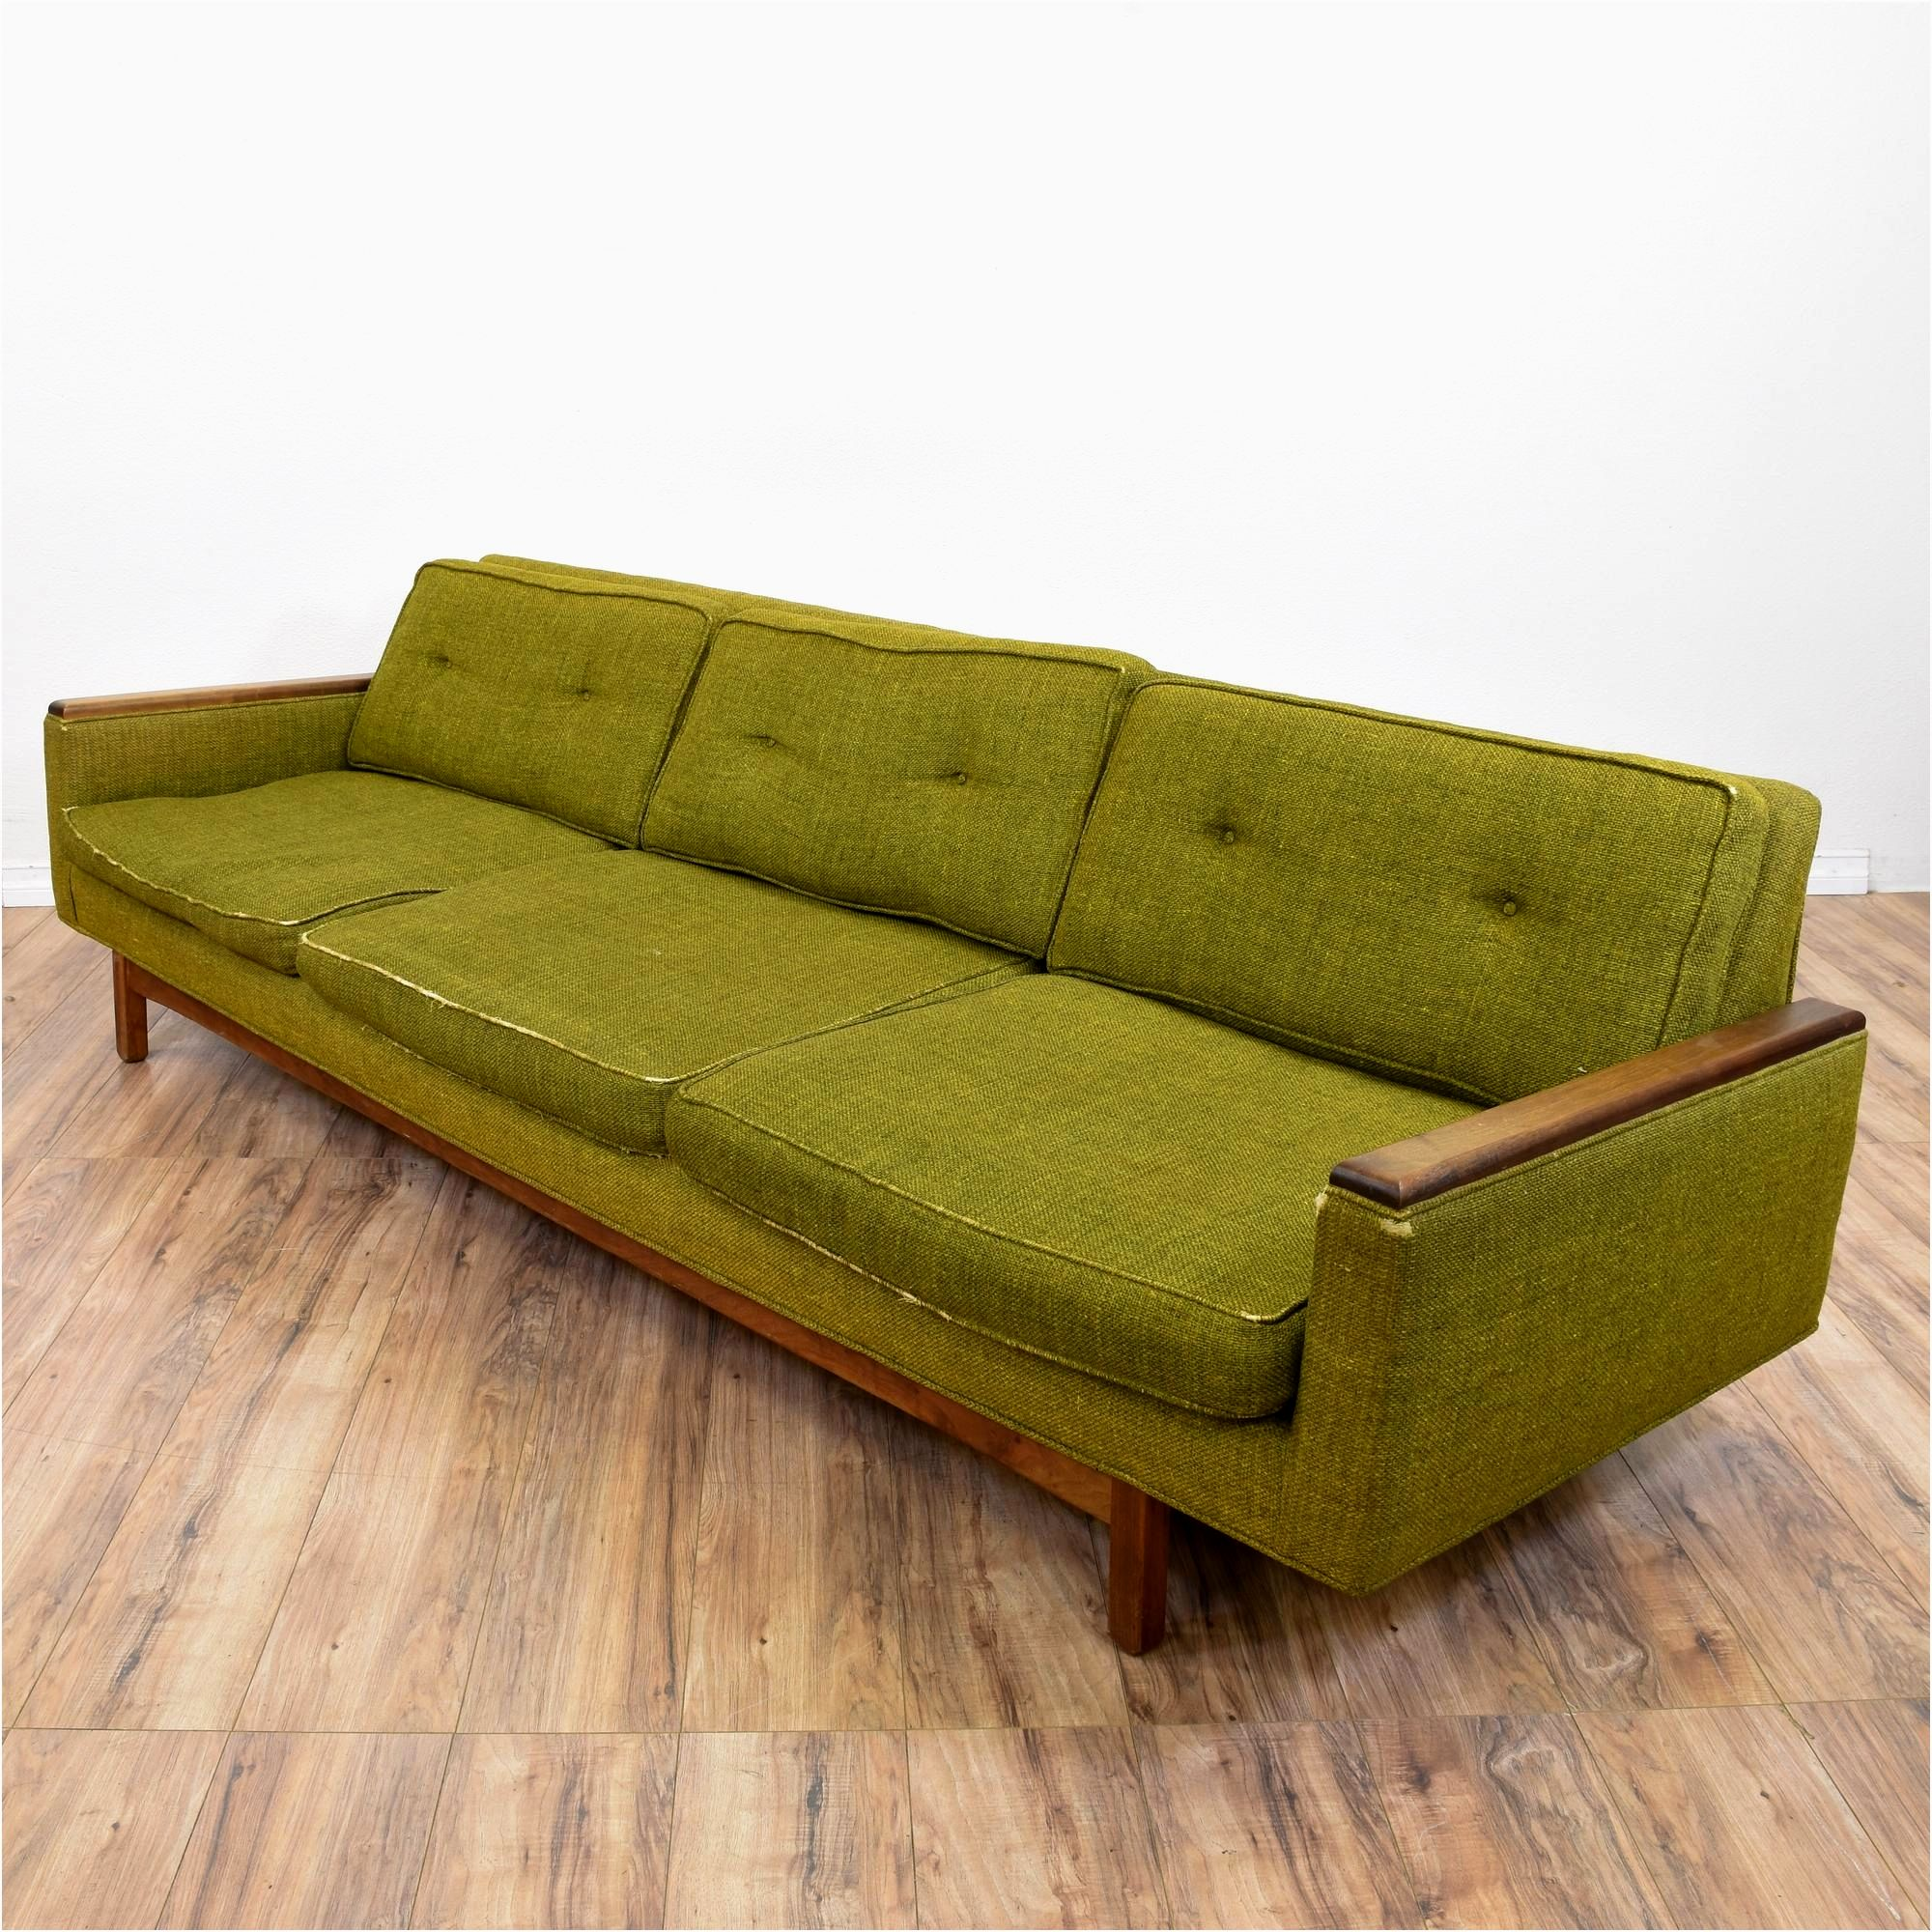 wonderful crate and barrel sofa photograph-Lovely Crate and Barrel sofa Construction